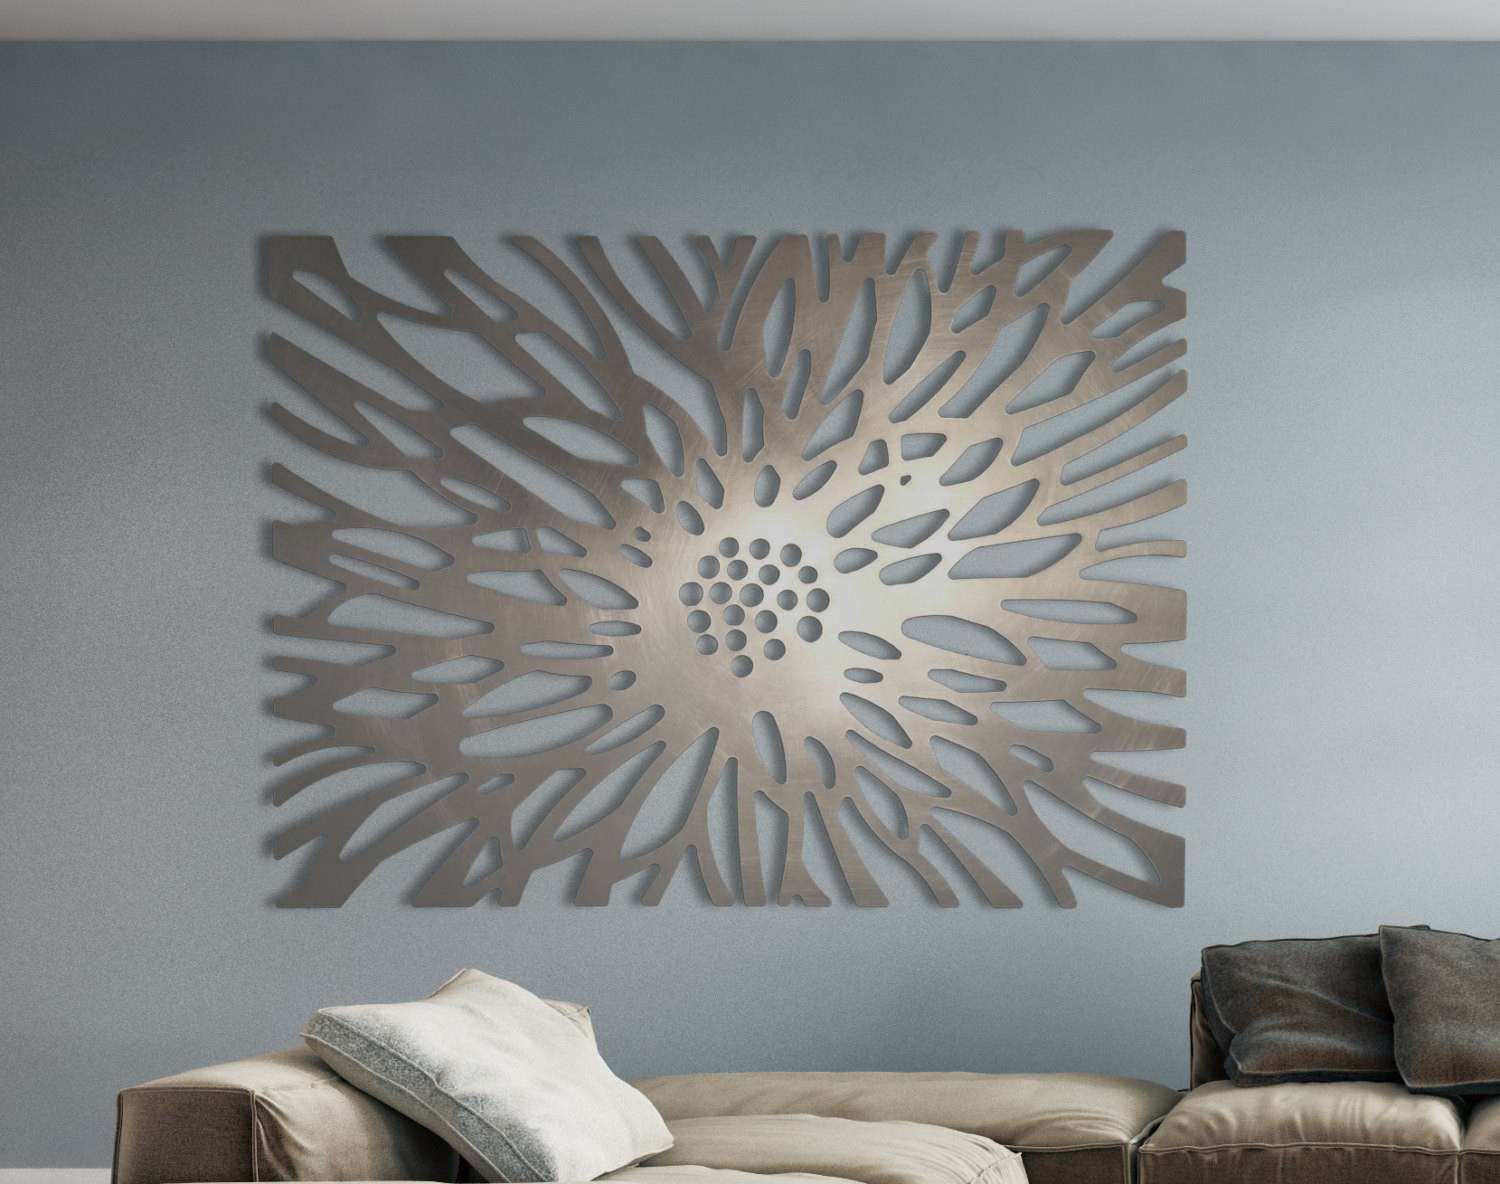 Architectural Wall Decor Luxury Laser Cut Metal Decorative Art Panel Sculpture For Home